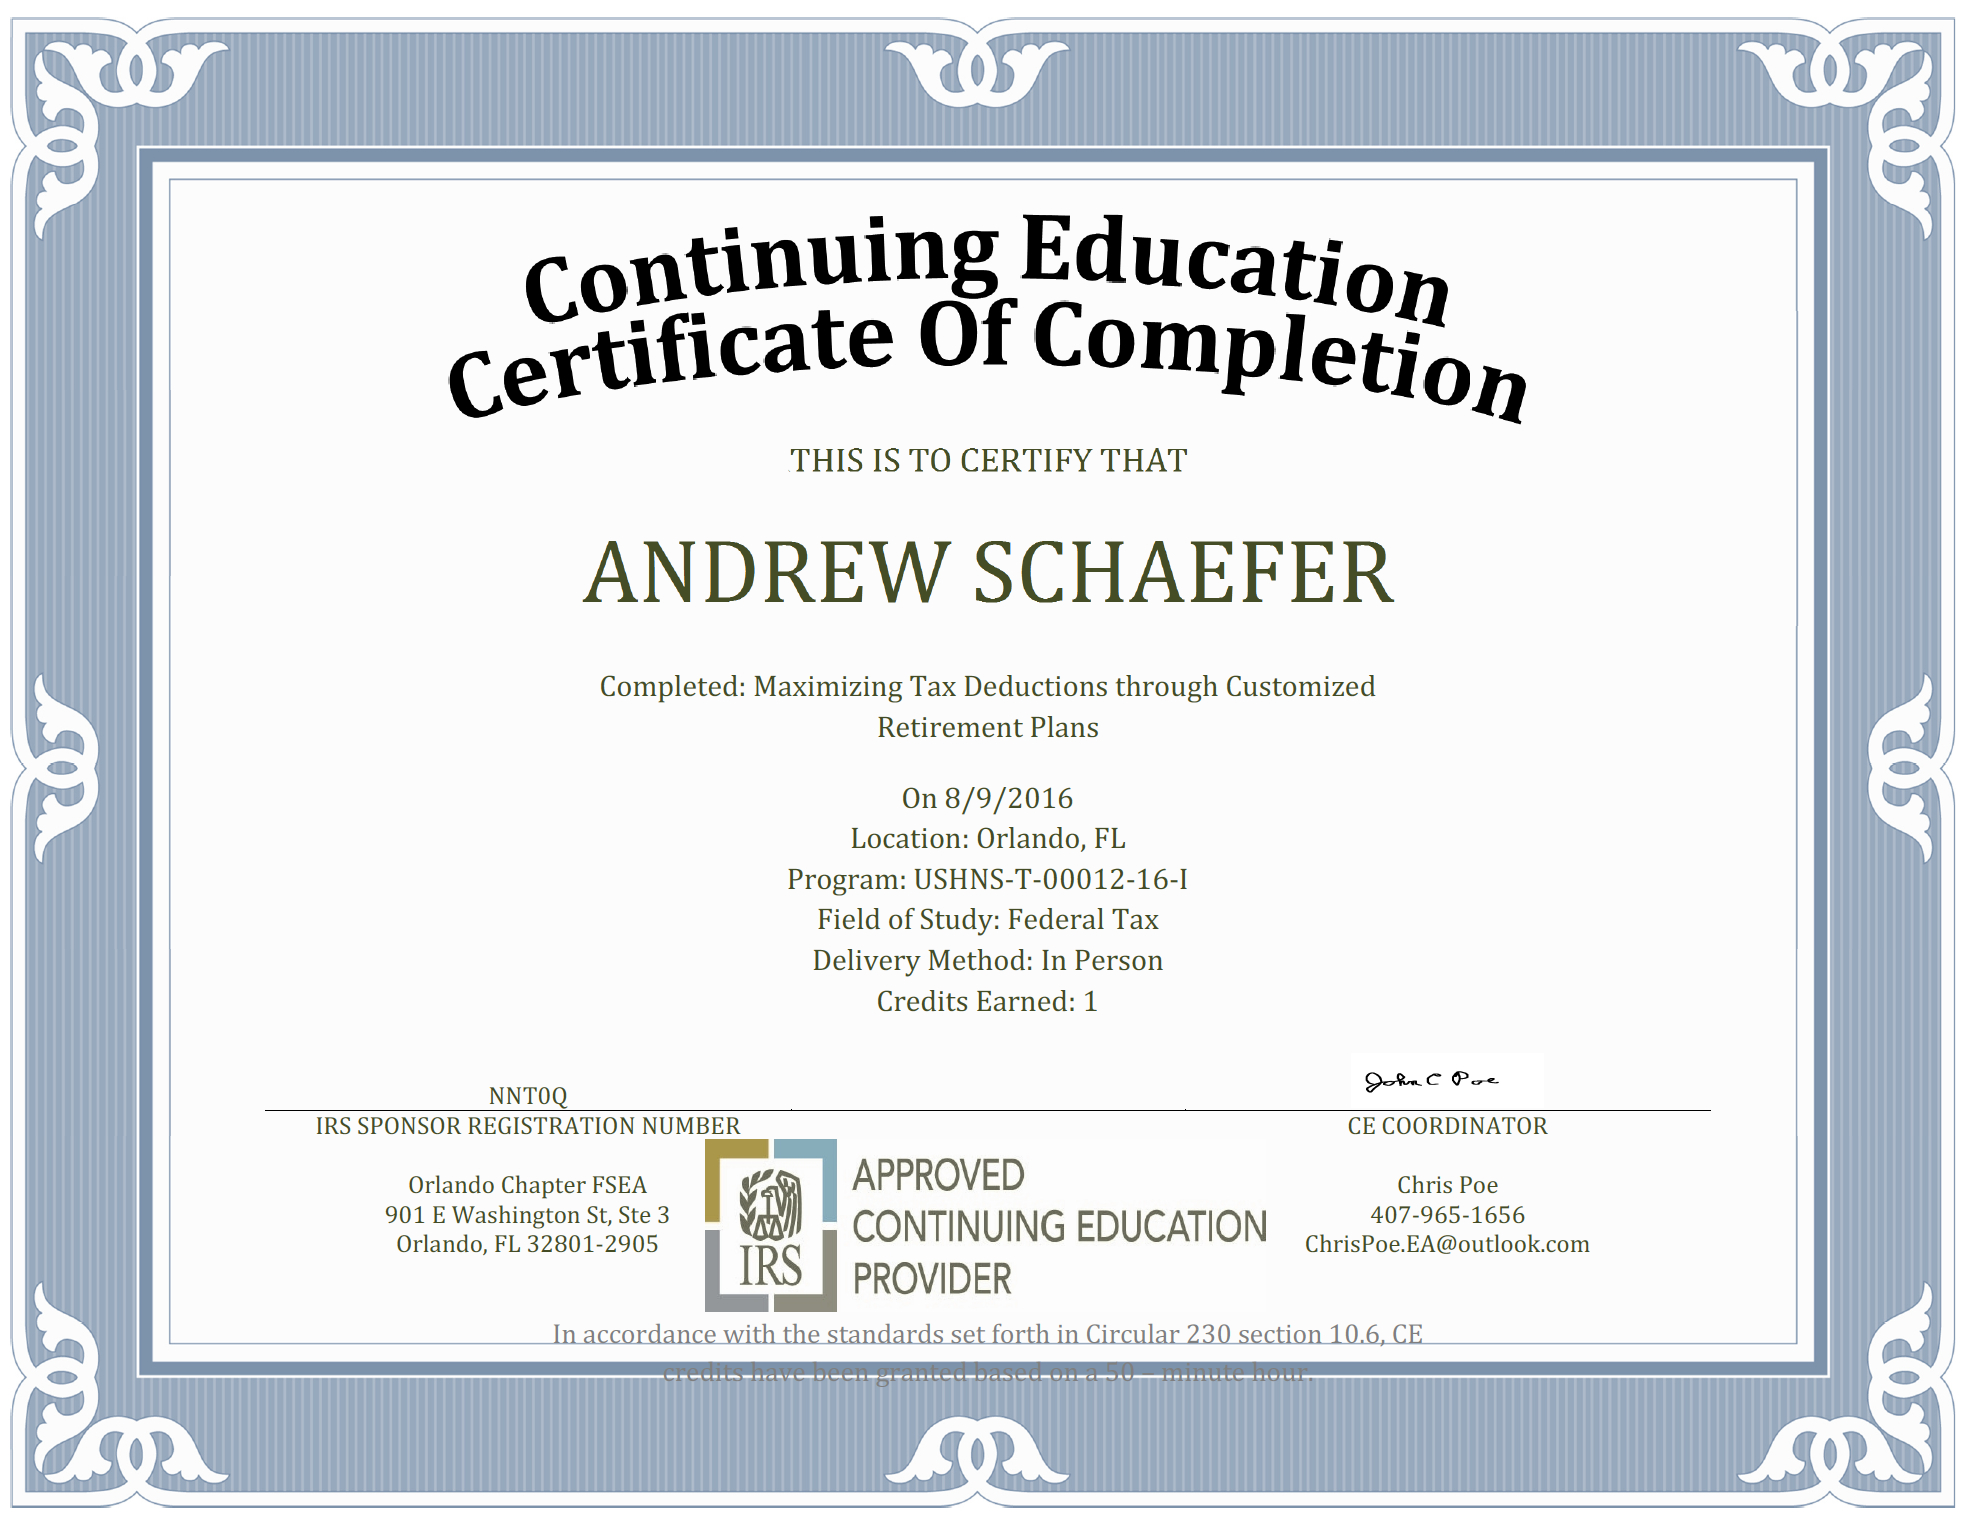 Ceu Certificate Of Completion Template Sample With Continuing Education Certificate Template